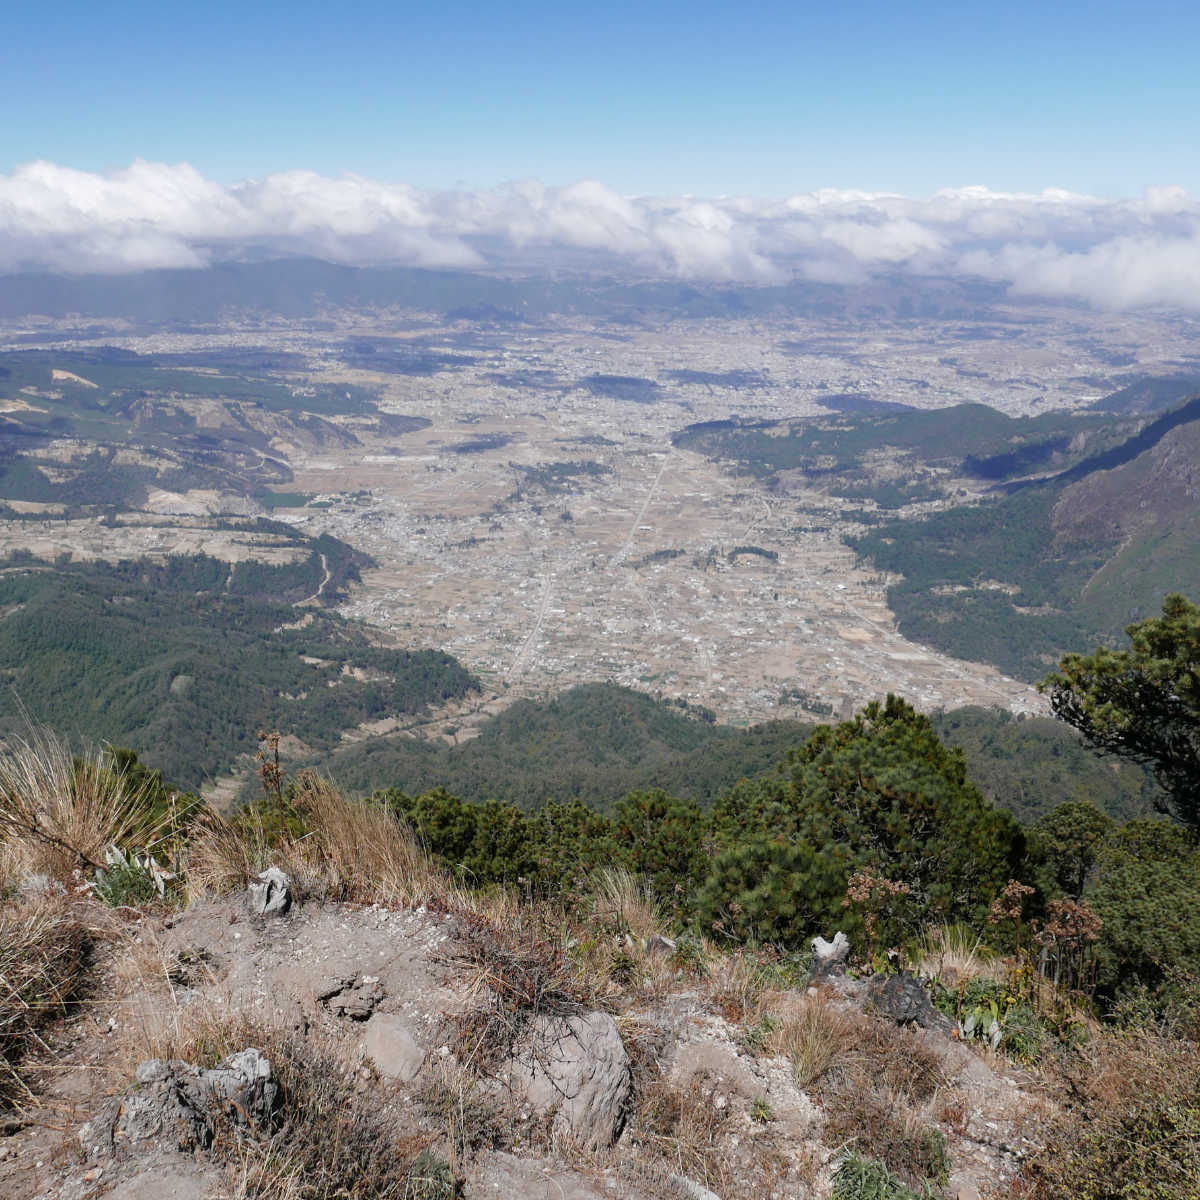 View from volcano Santa Maria near Xela, Guatemala